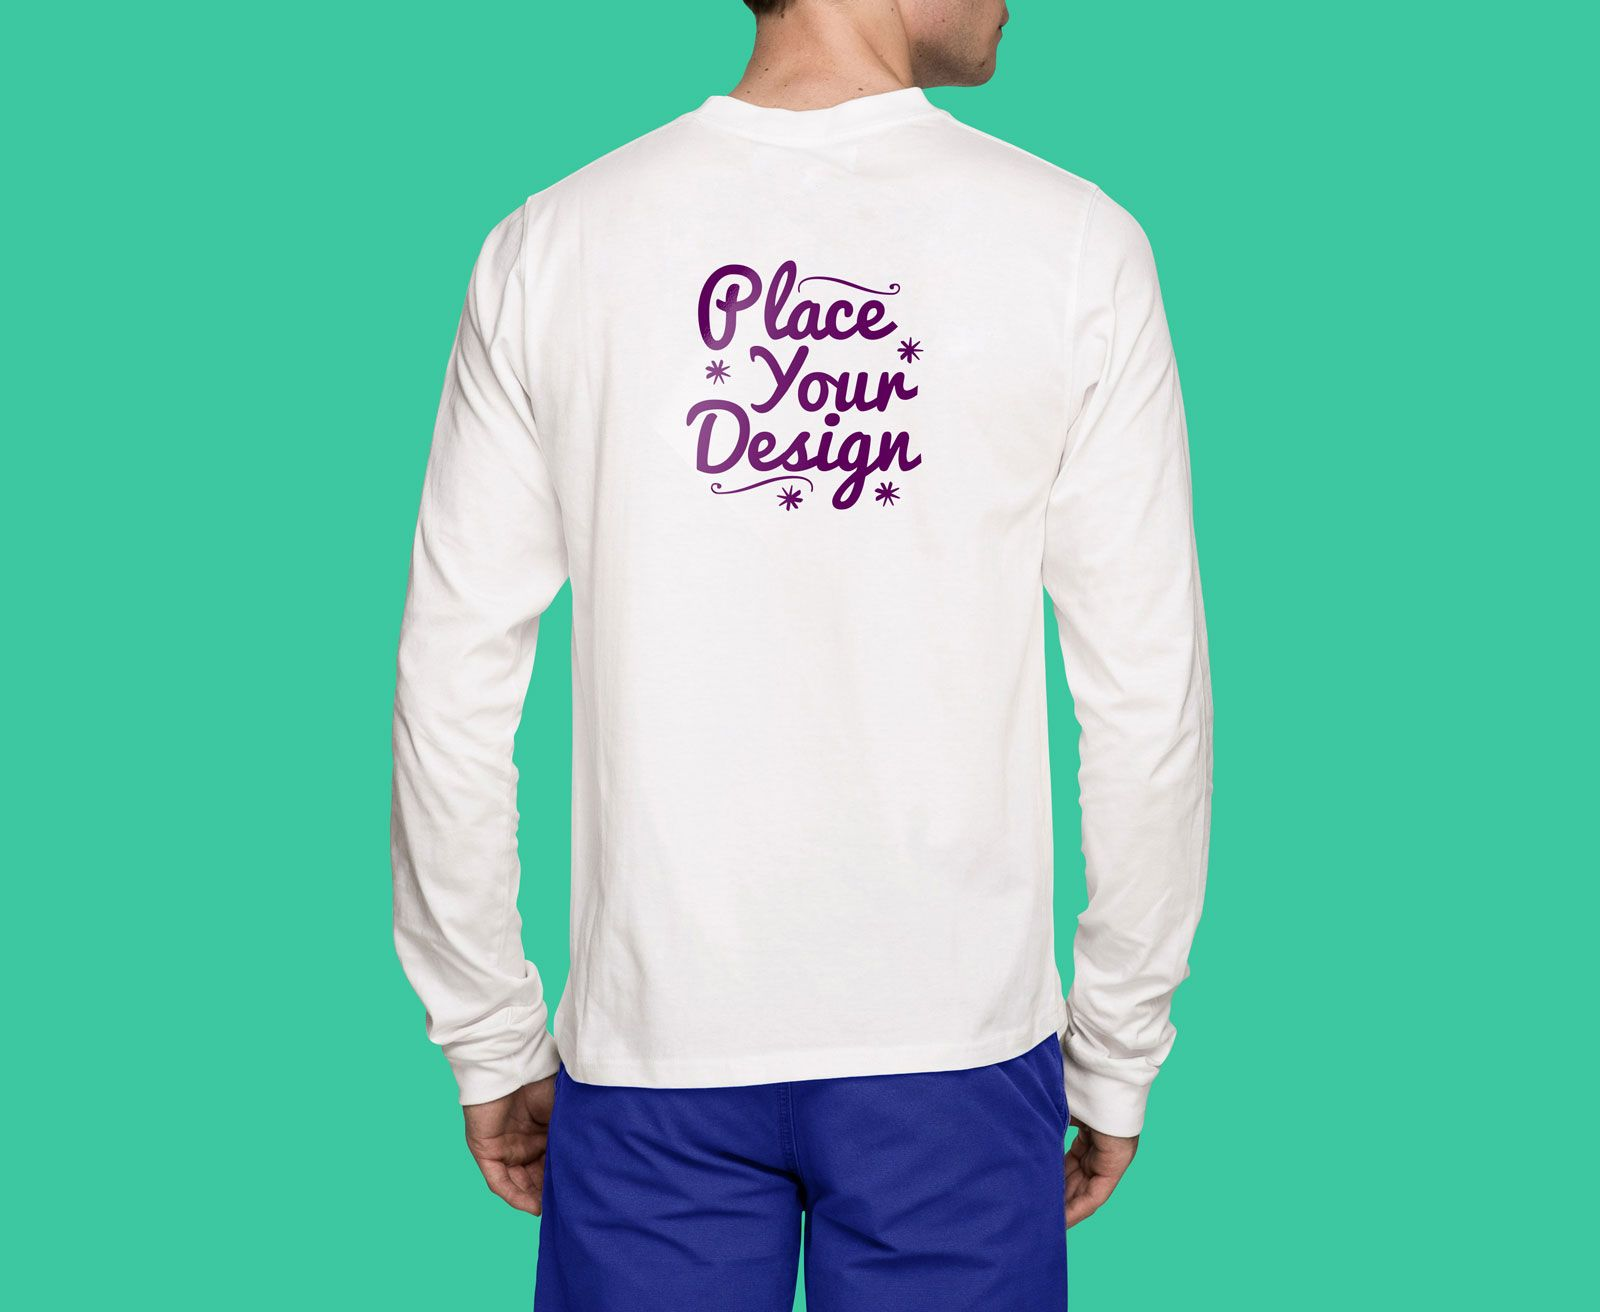 Download A Front And Backside Full Sleeves T Shirt Mockup For Online T Shirt Stores As Well As For Designers To Presen Shirt Mockup Long Sleeve Tshirt Men Tshirt Mockup